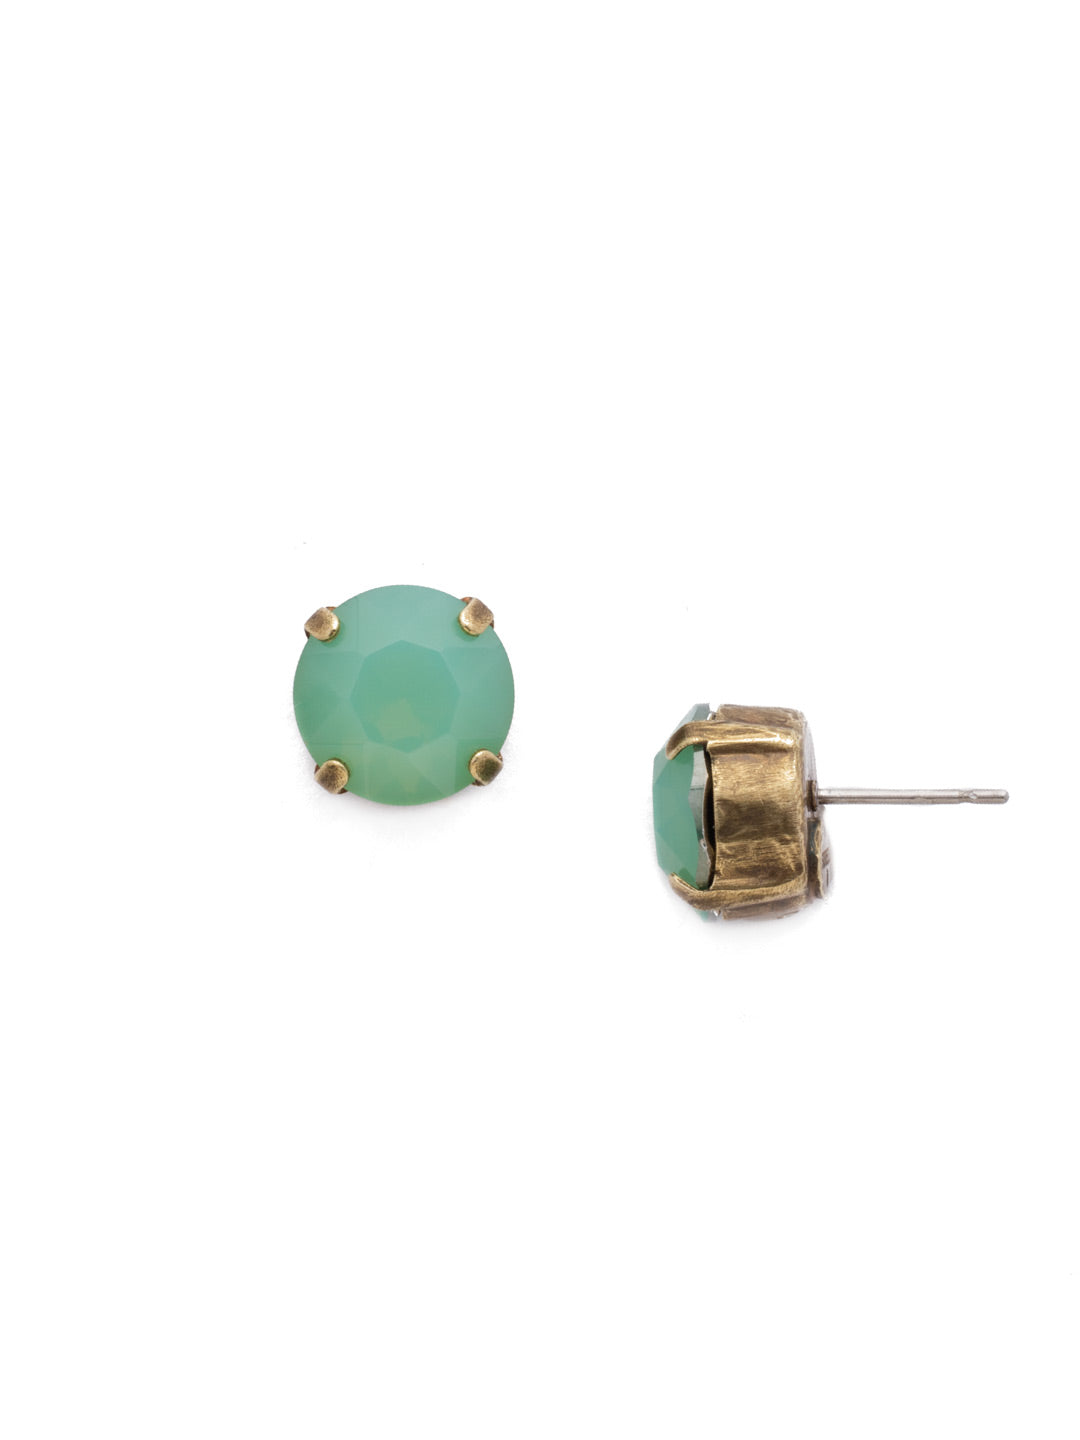 Round Crystal Stud Earrings - ECM14AGPAC